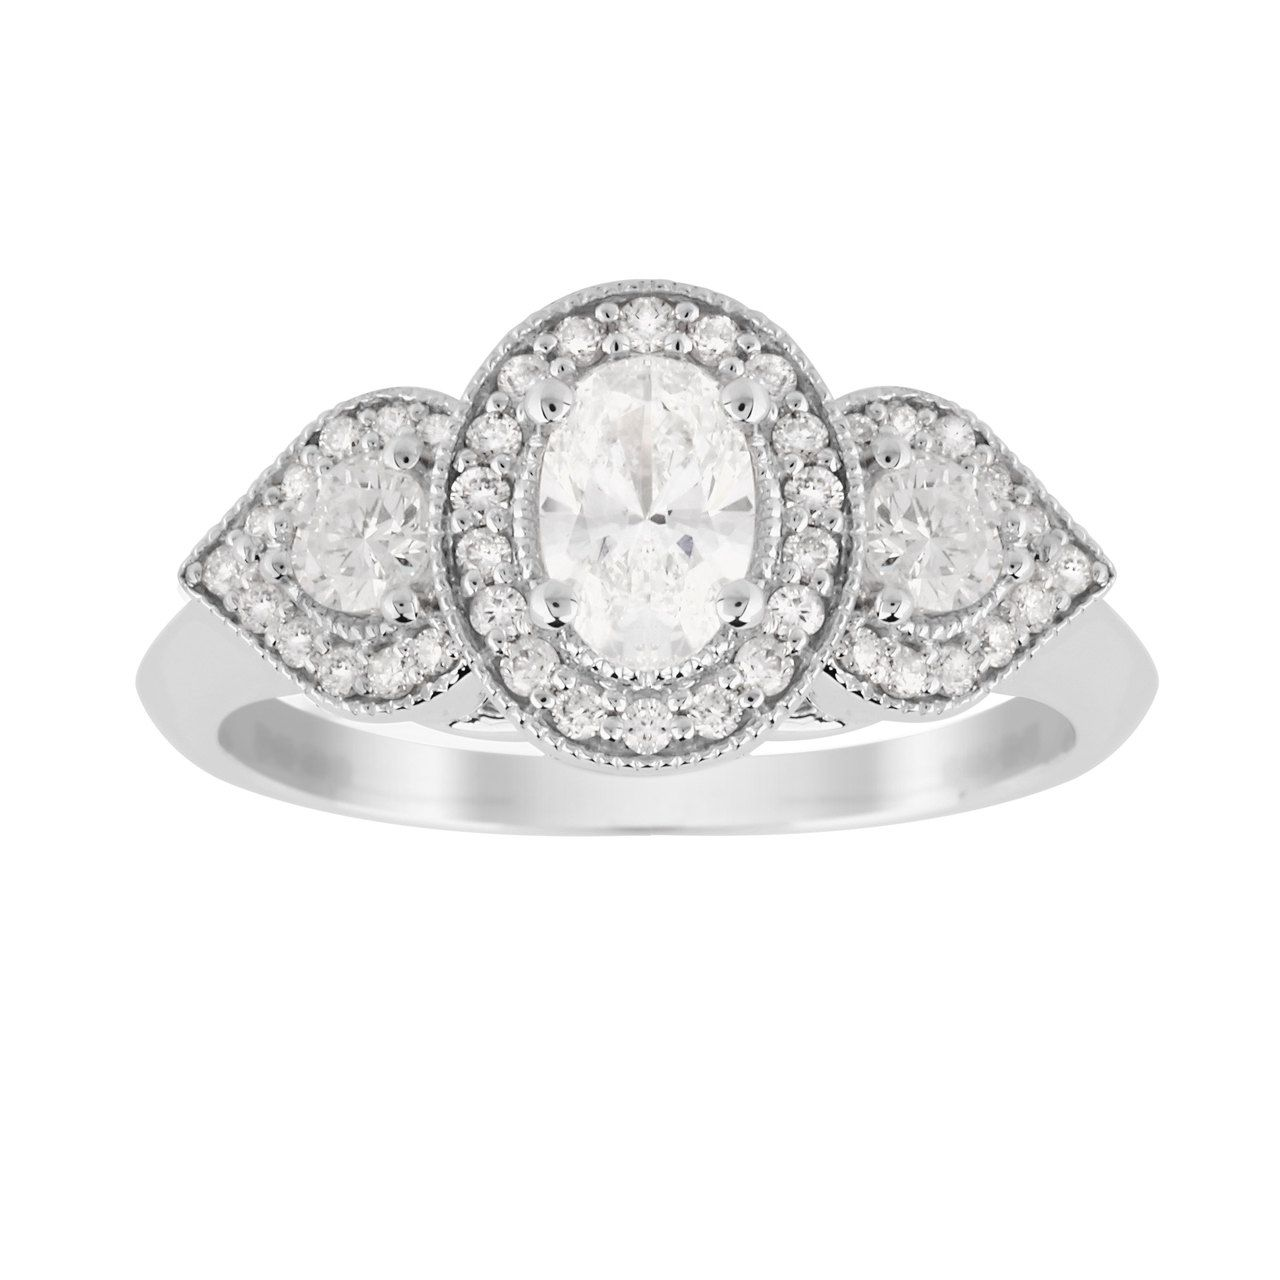 Jenny Packham Three Stone Brilliant Cut Carat Total Weight Diamond Art Deco  Style Ring in 18 Carat White Gold - Ring Size J